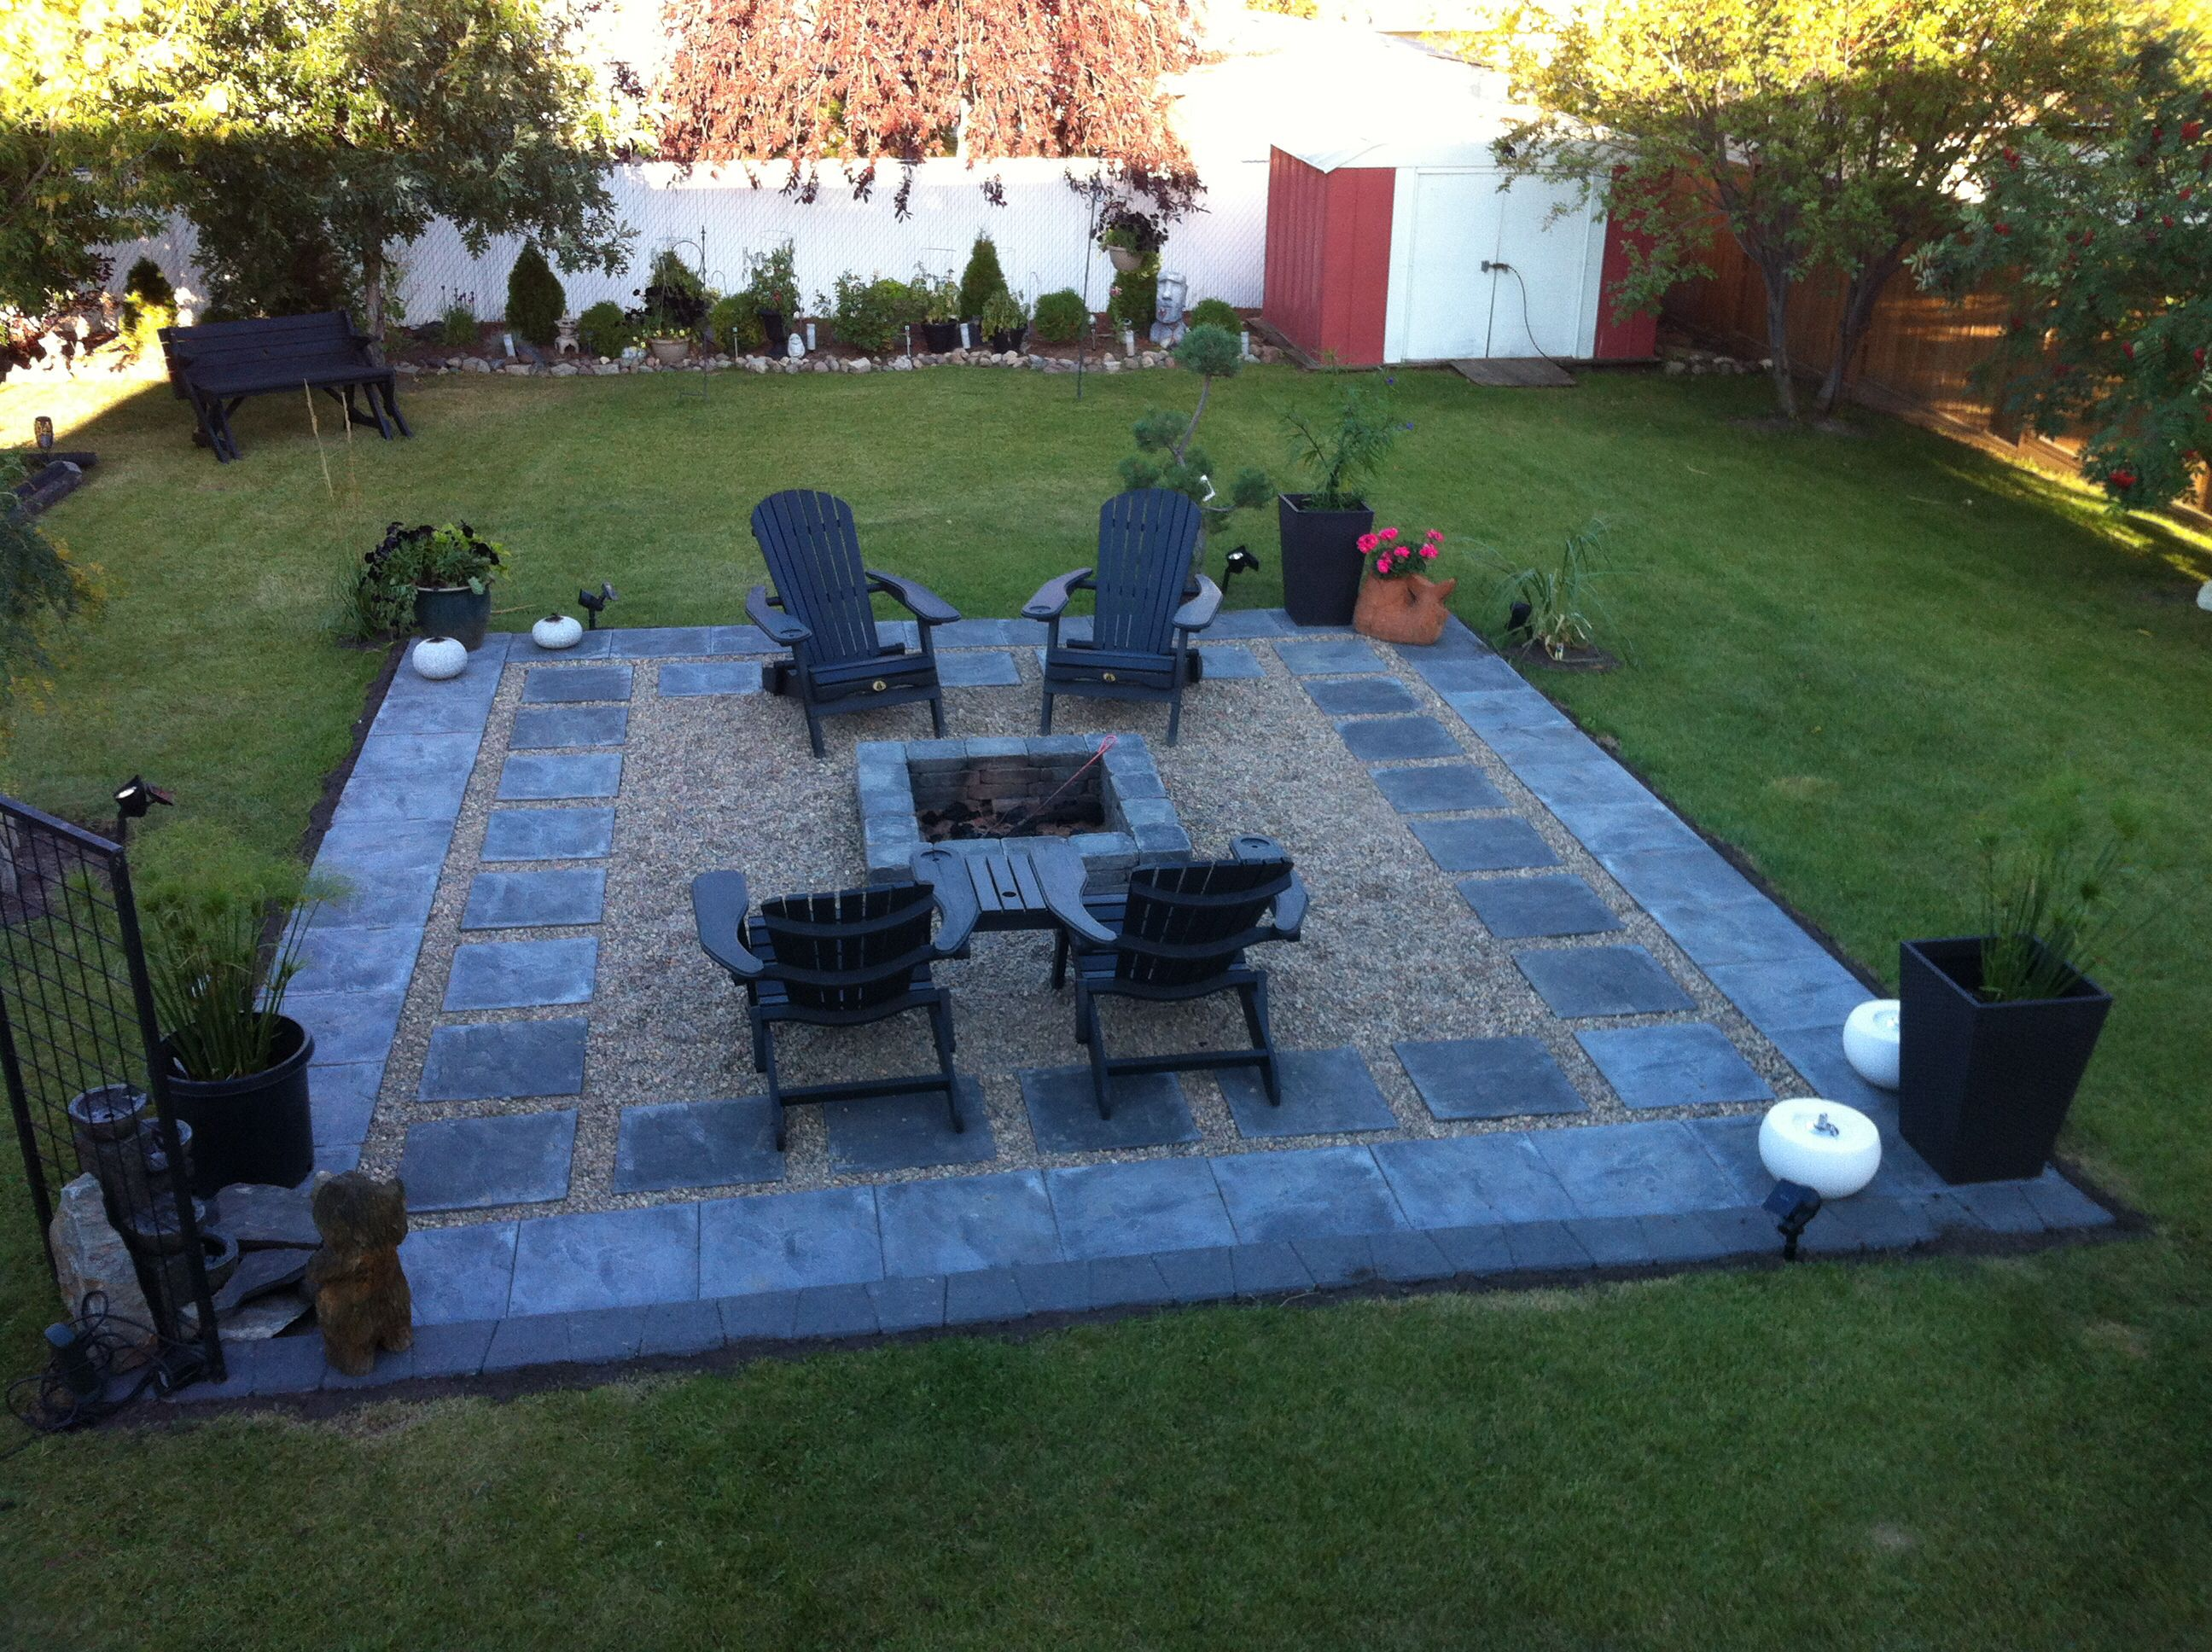 Stone fire pit designs patio traditional with artistic hardscape - Charcoal Slate Patio Stones With Pea Stone Gravel A Square Fire Pit To Compliment The Patio Stones Easy To Build As Long As You Have A Level Backyard